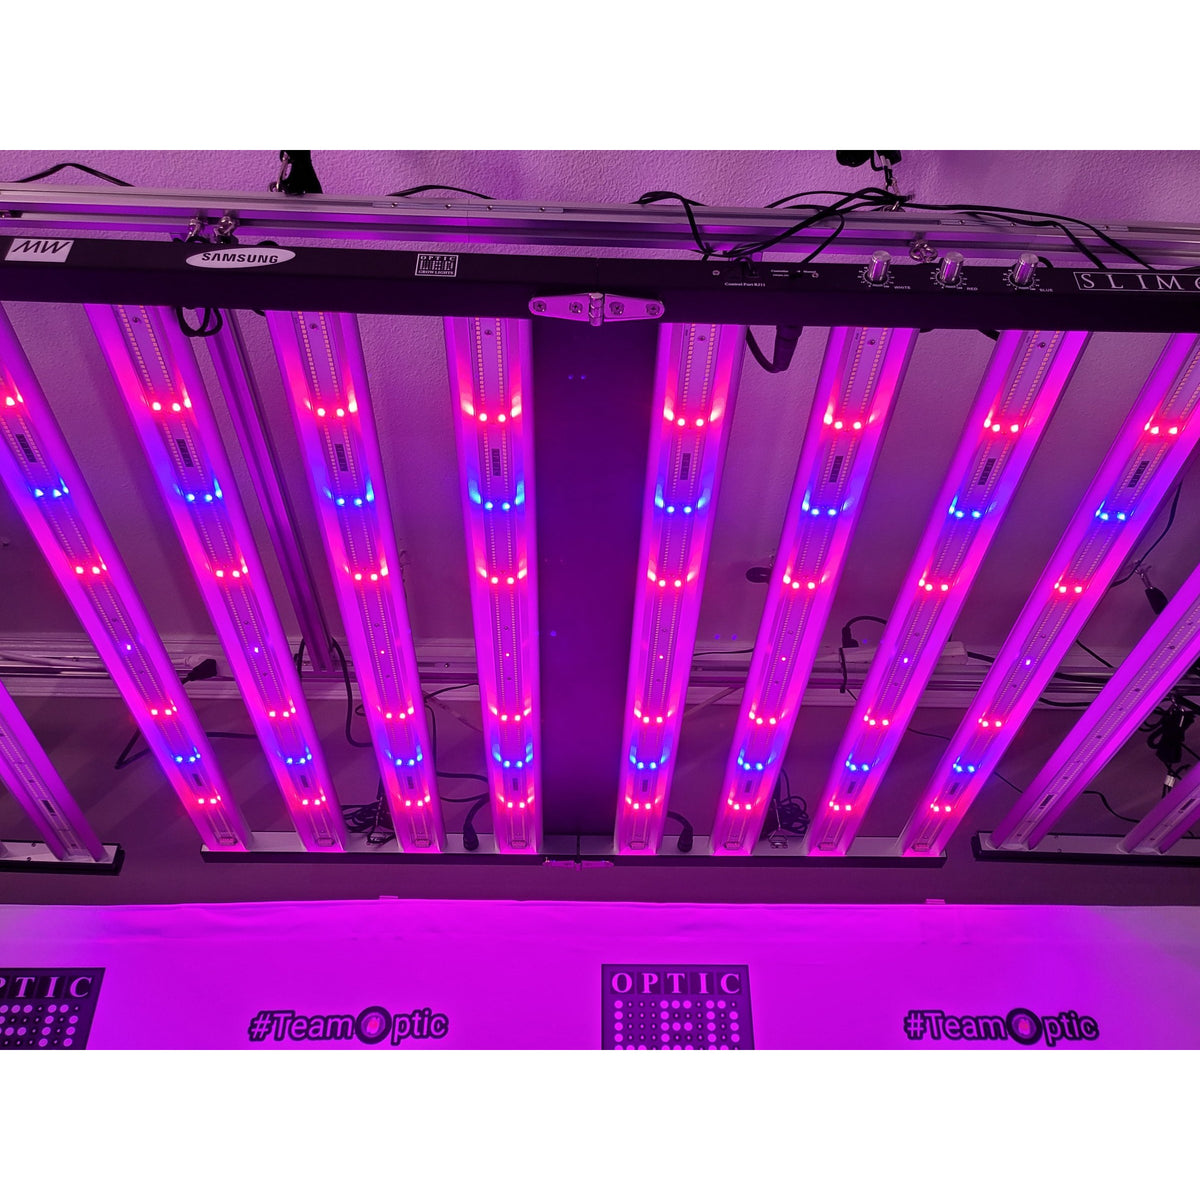 Optic LED Optic LED Slim 650S 650w 3500k Dimmable Full Spectrum LED Grow Light